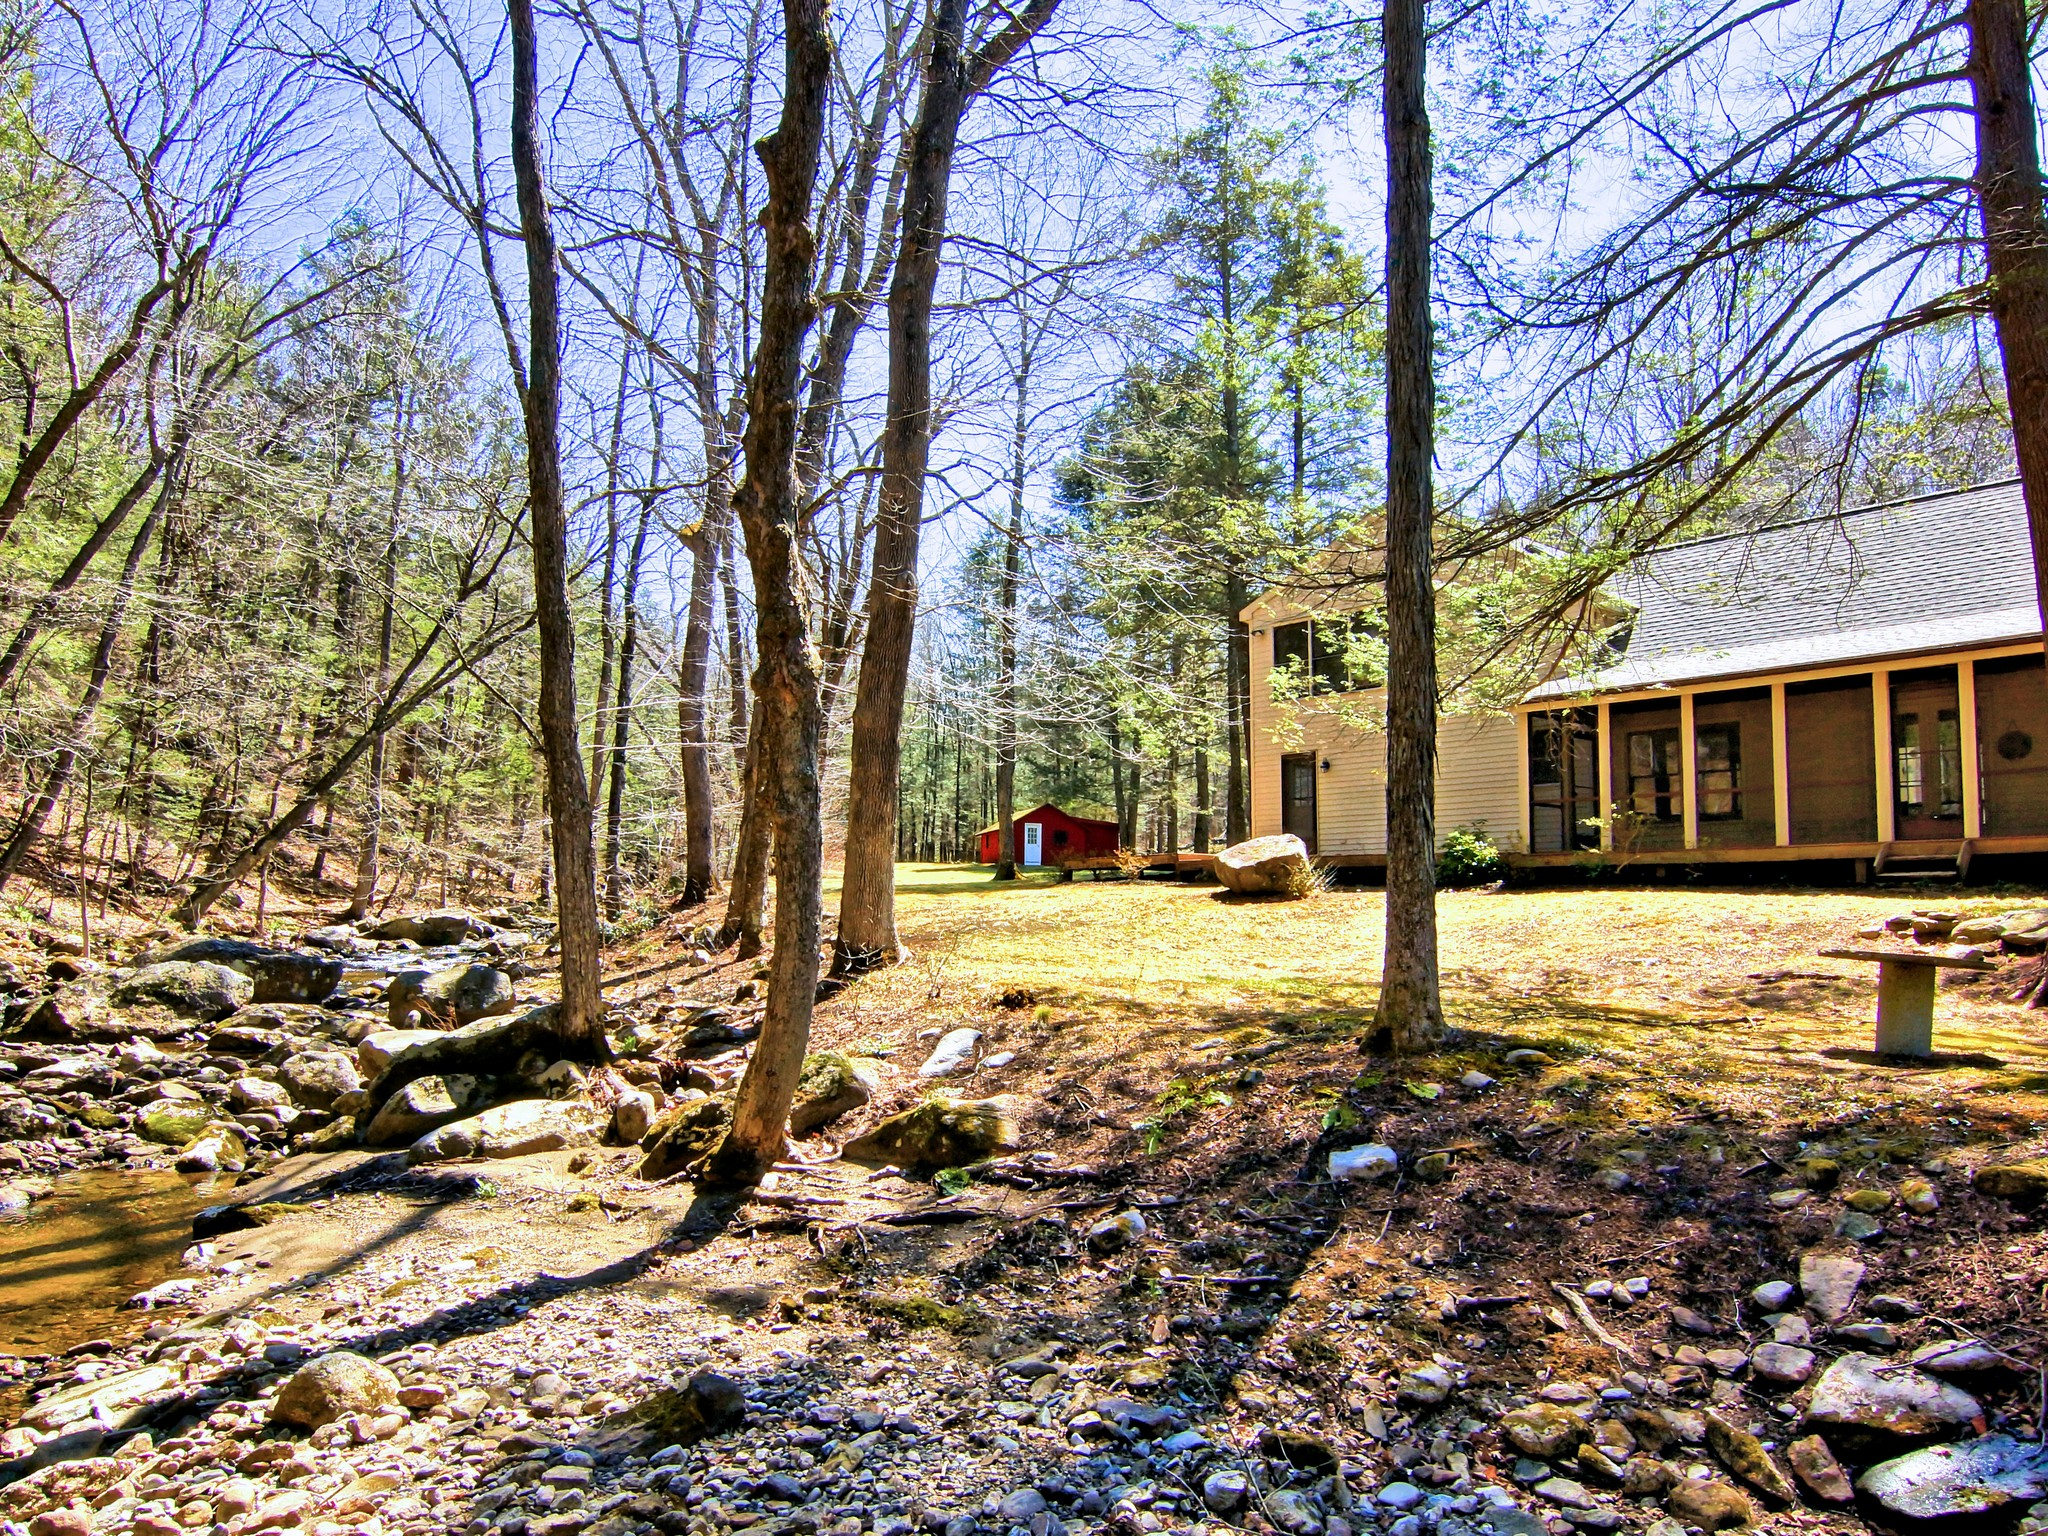 Single Family Home for Sale at Red Gulch Farm at Kent Falls 47 Carter Rd Kent, Connecticut, 06757 United States